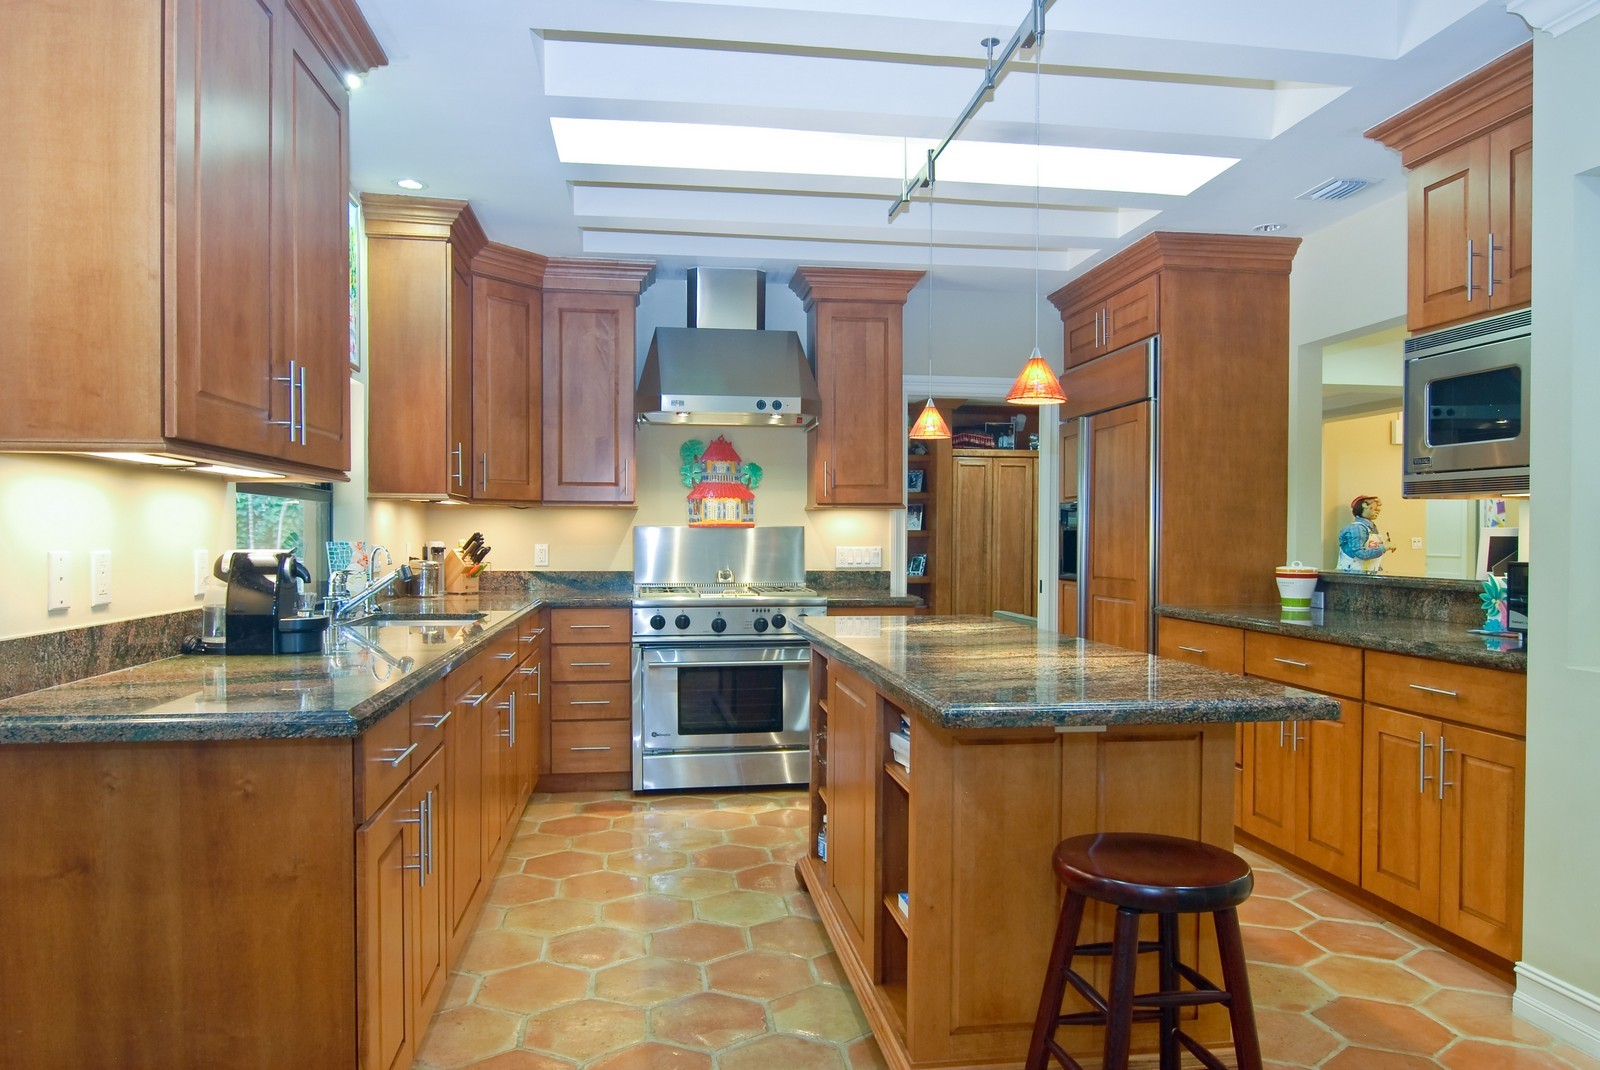 Real Estate Photography - 3403 Poinciana, Coconut Grove, FL, 33133 - Kitchen